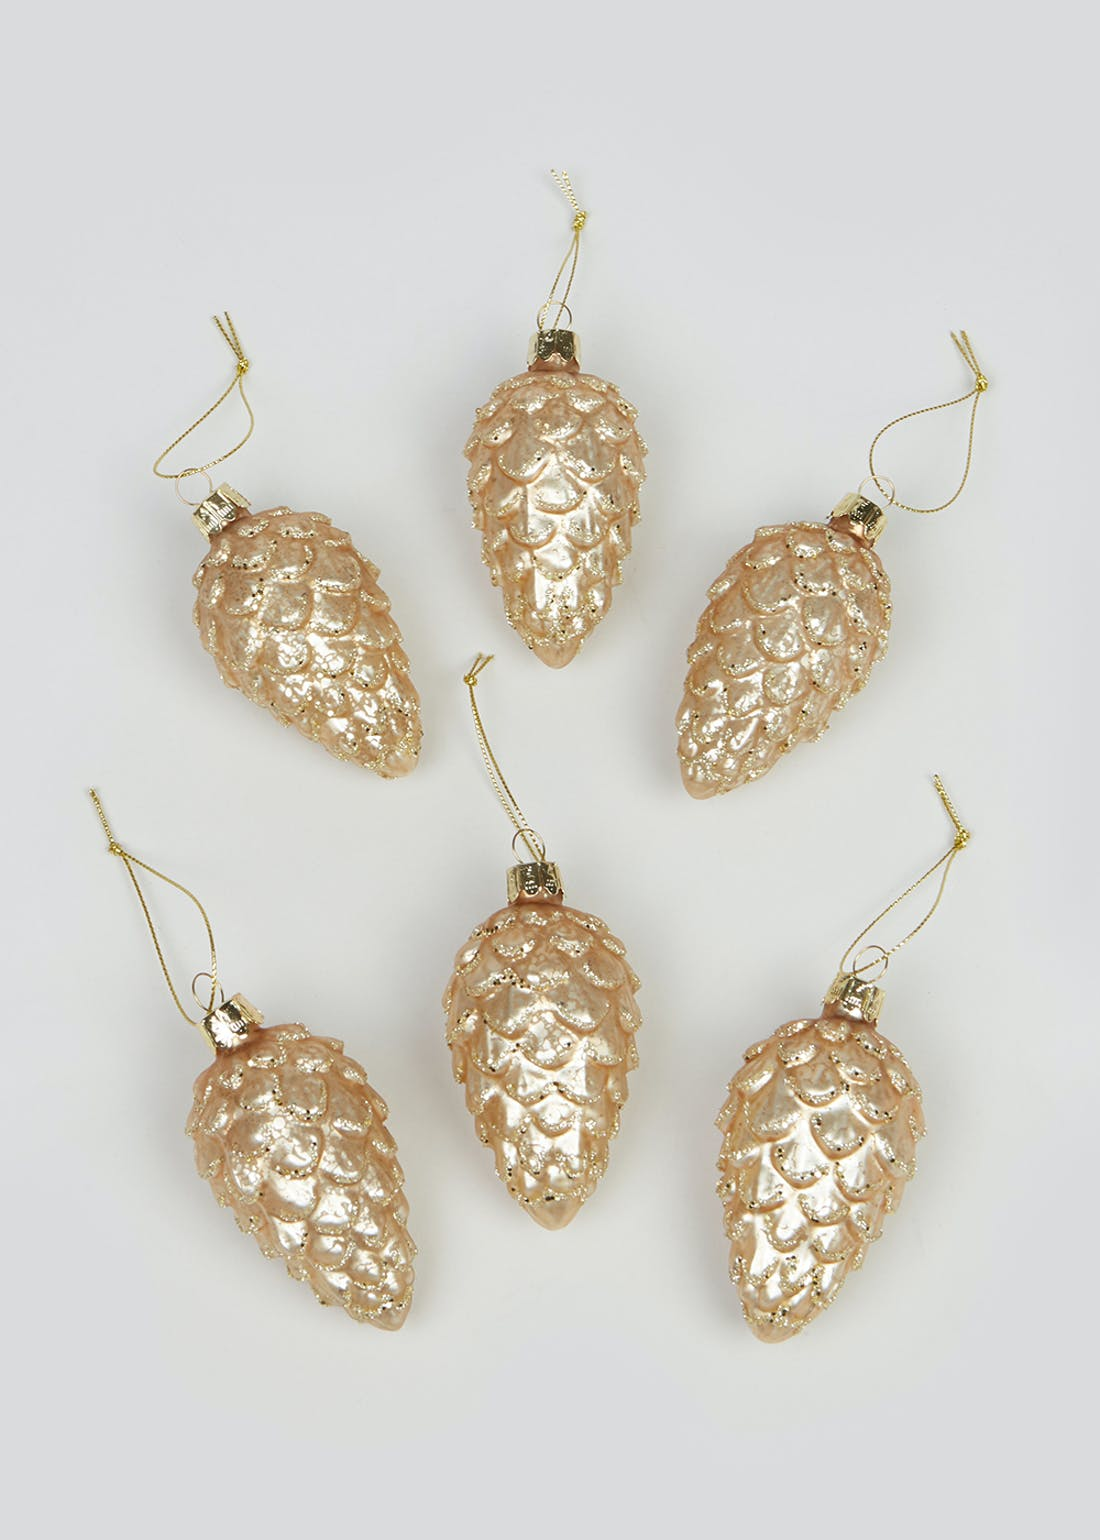 6 Pack Metallic Pinecone Christmas Baubles (8cm x 3cm)